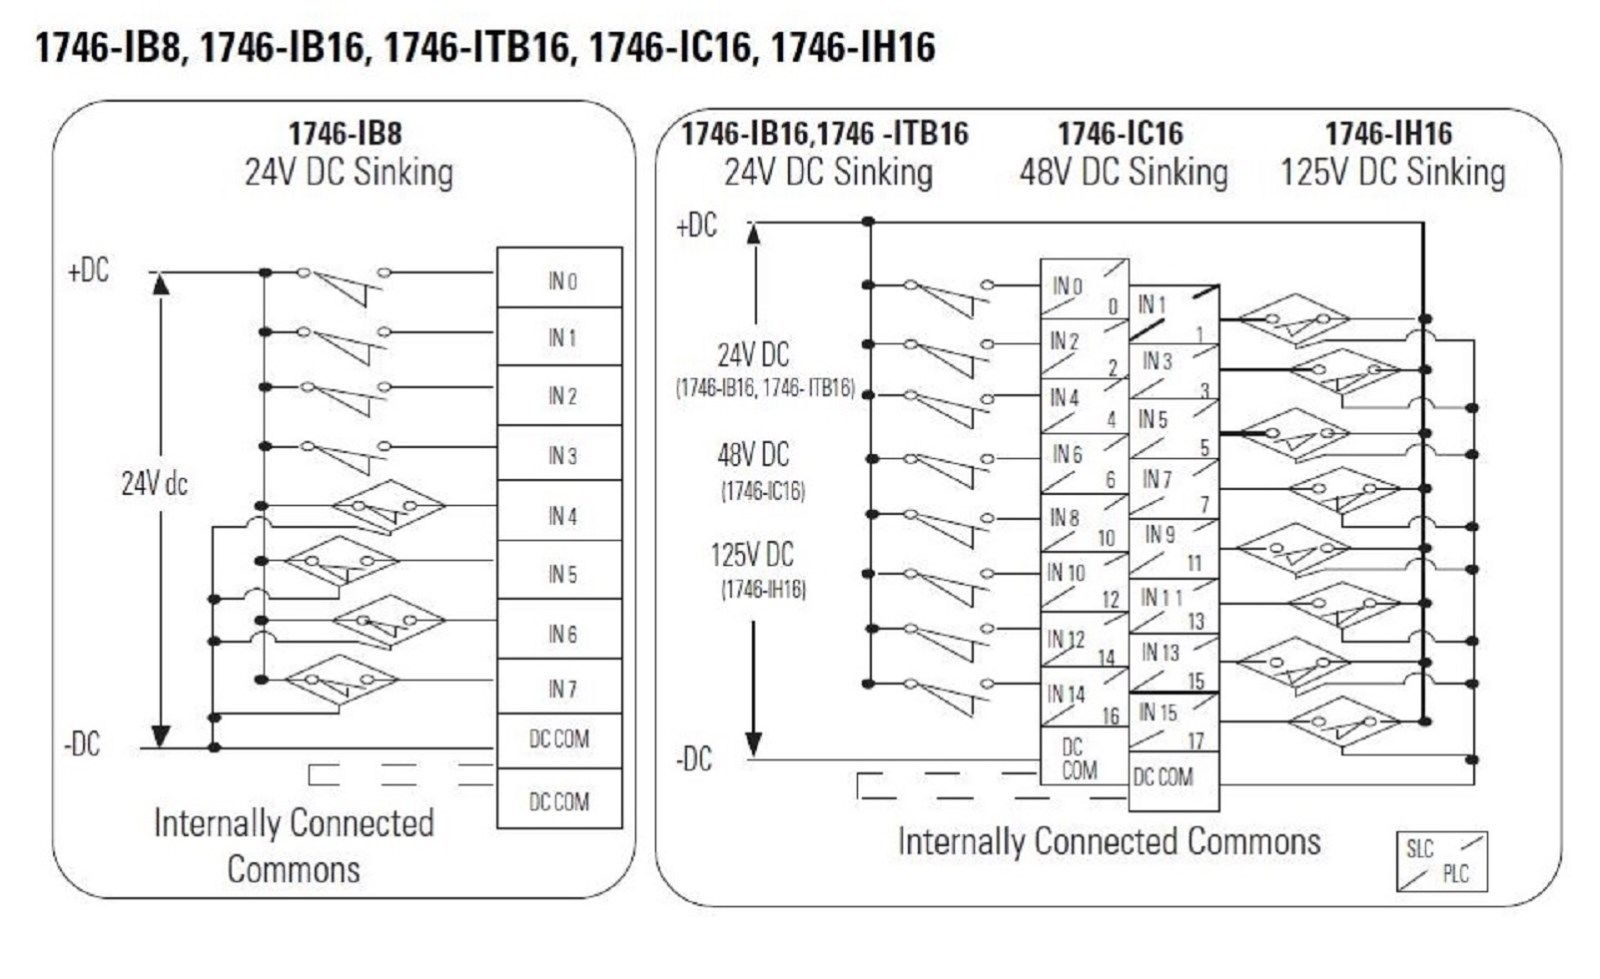 1746 ib16 wiring diagram Download-24v Dc Good V Dc Motor with 24v Dc Acdc and Dcdc Converters with Allen 1746 Ox8 Wiring Diagram New 2003 12-n